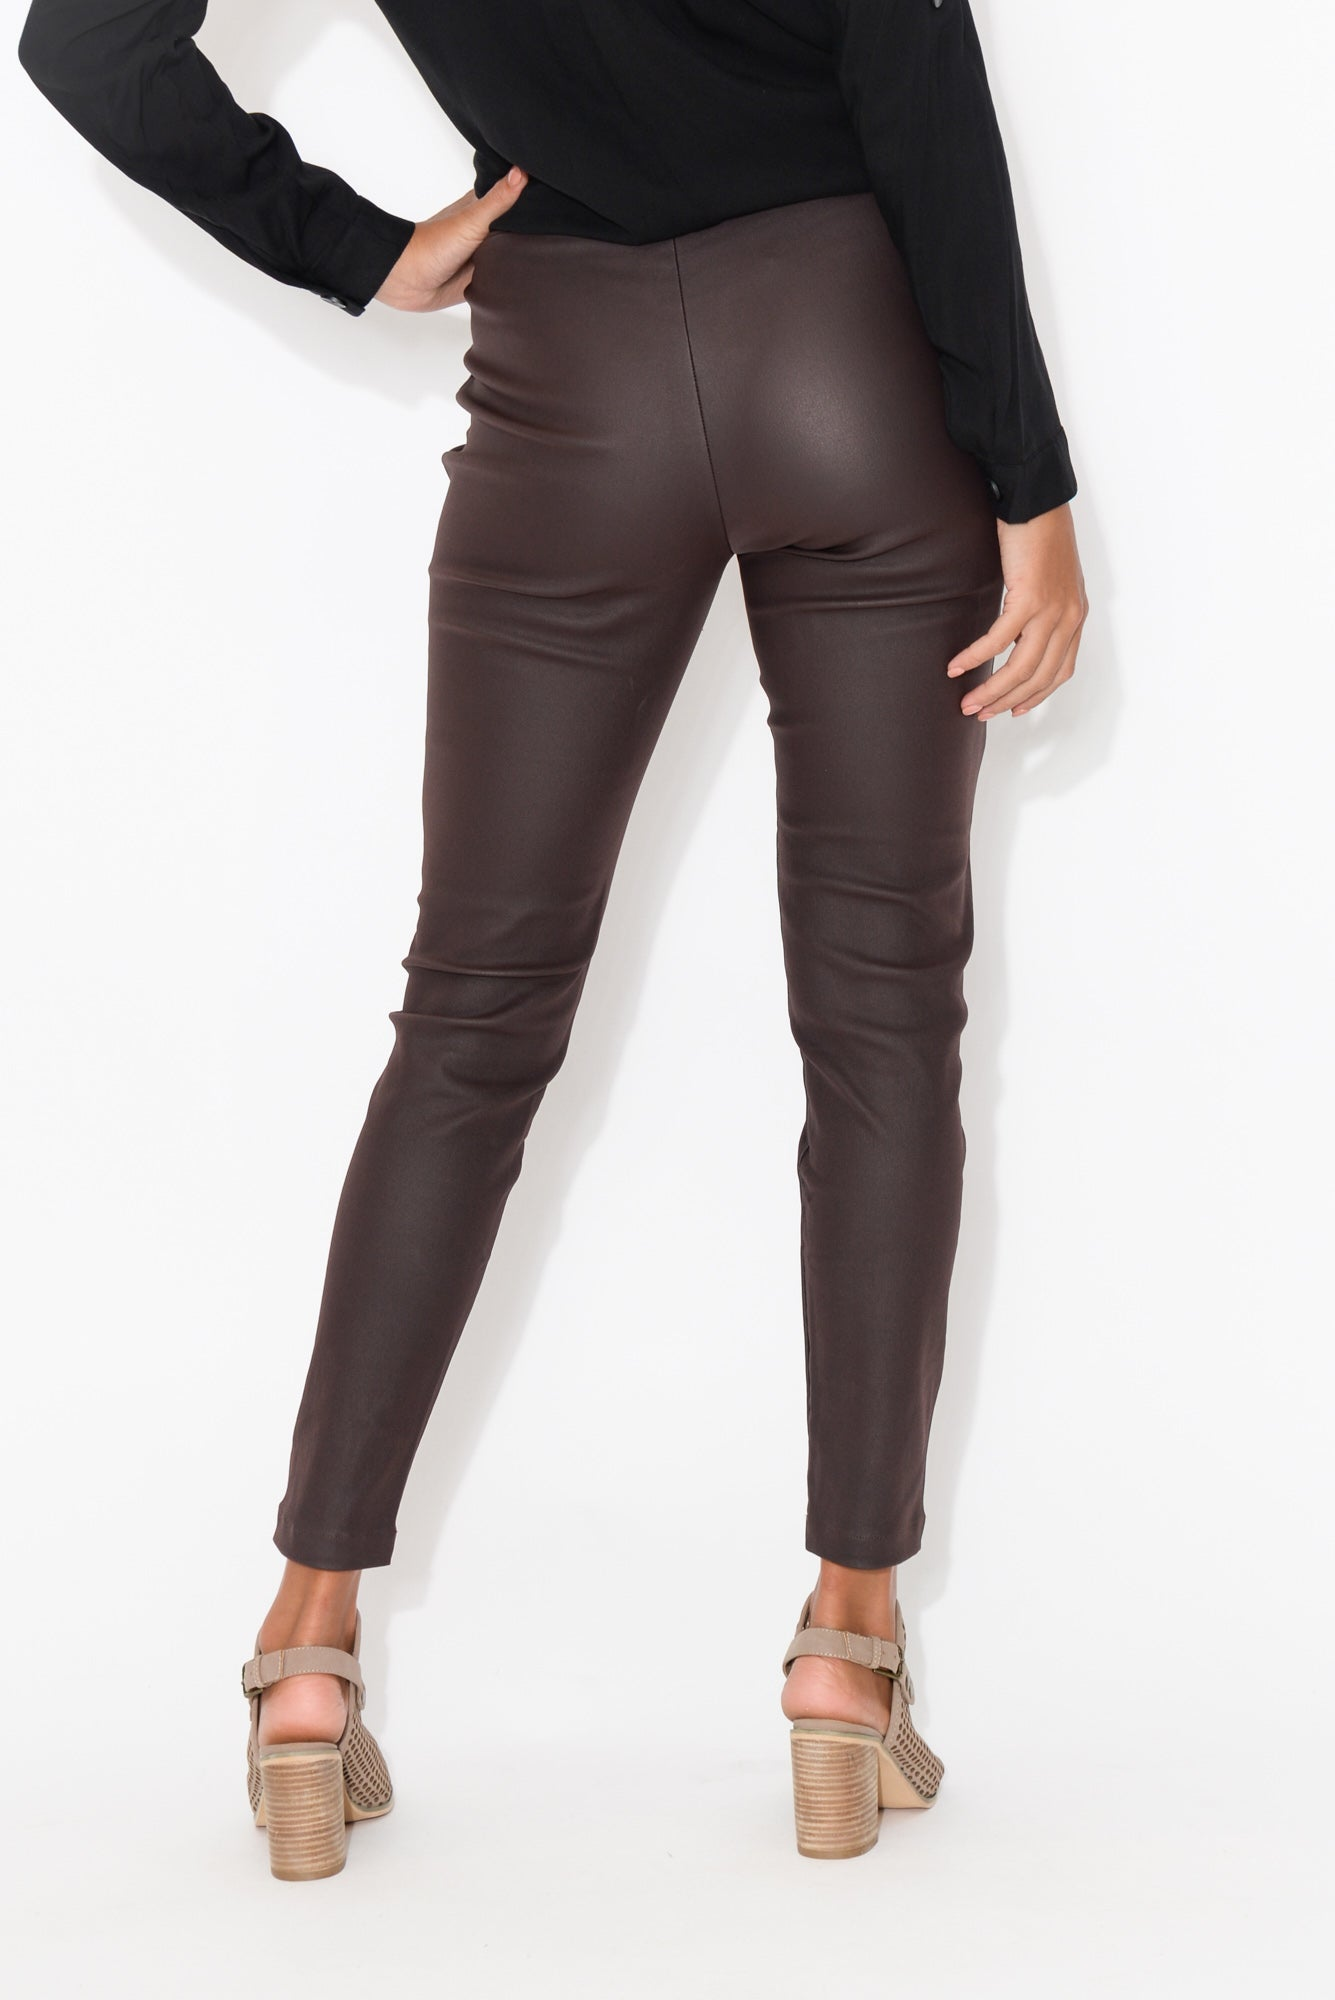 Hallie Burgundy Wax Jean